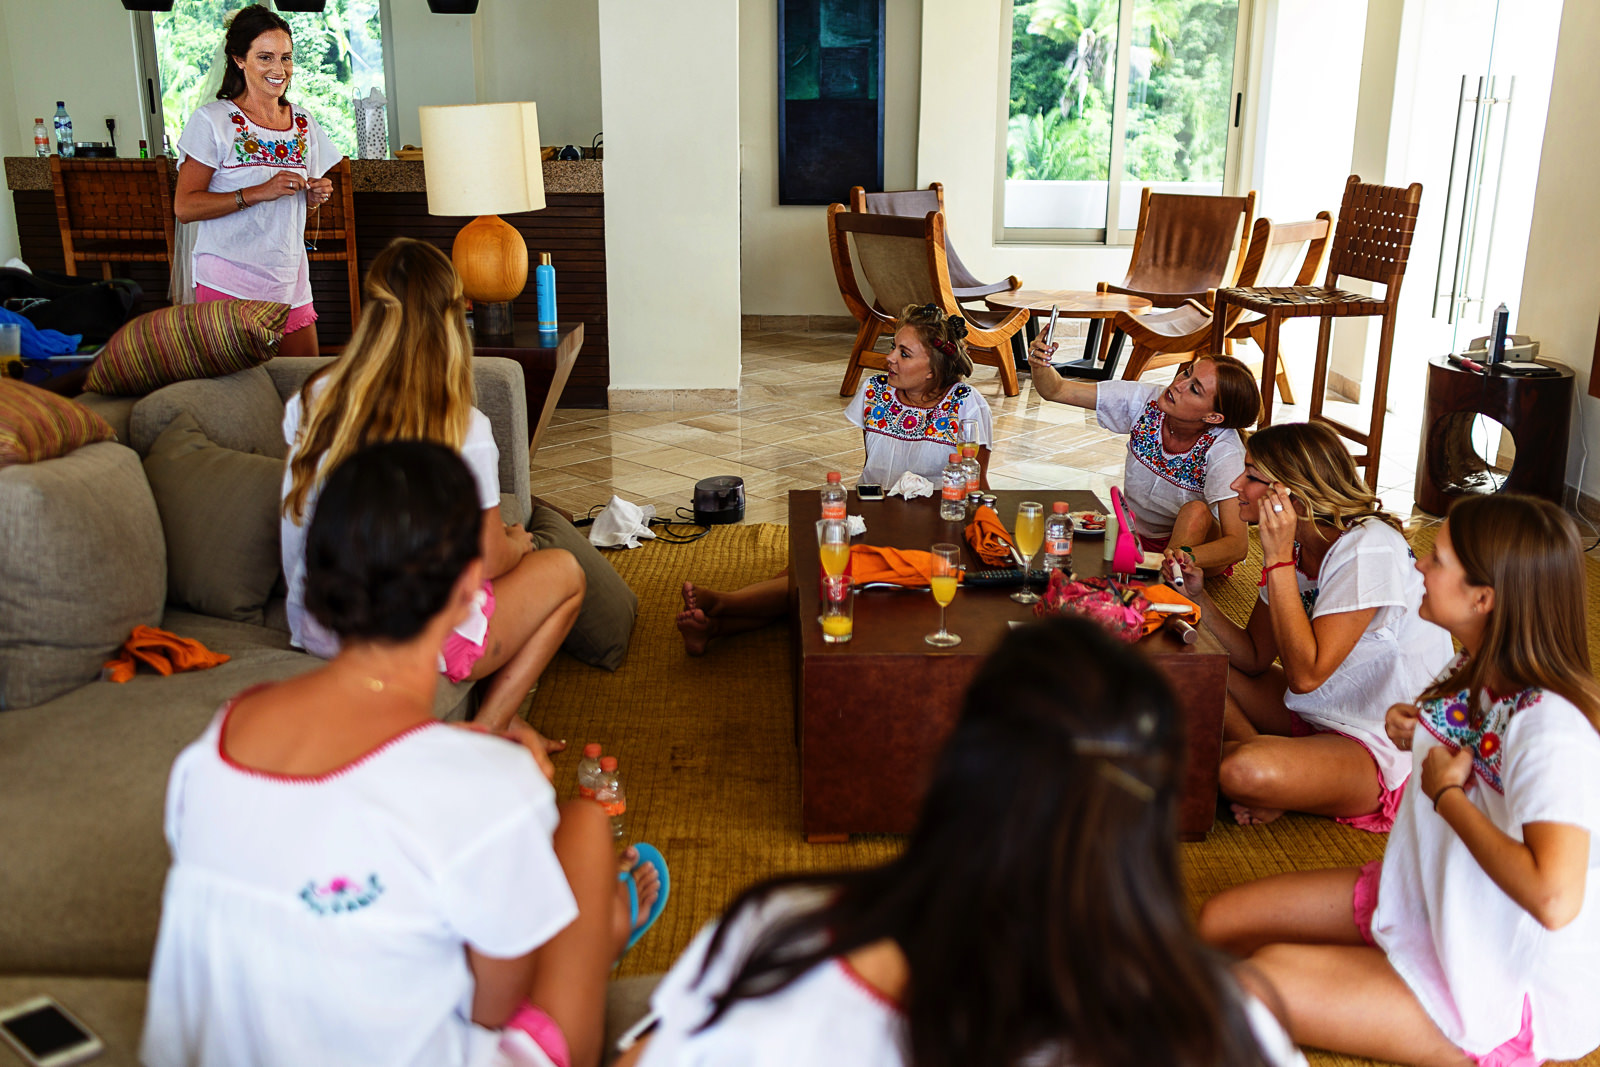 Bride and bridesmaids enjoying the getting ready before the wedding ceremony - Eder Acevedo cancun los cabos vallarta wedding photographer